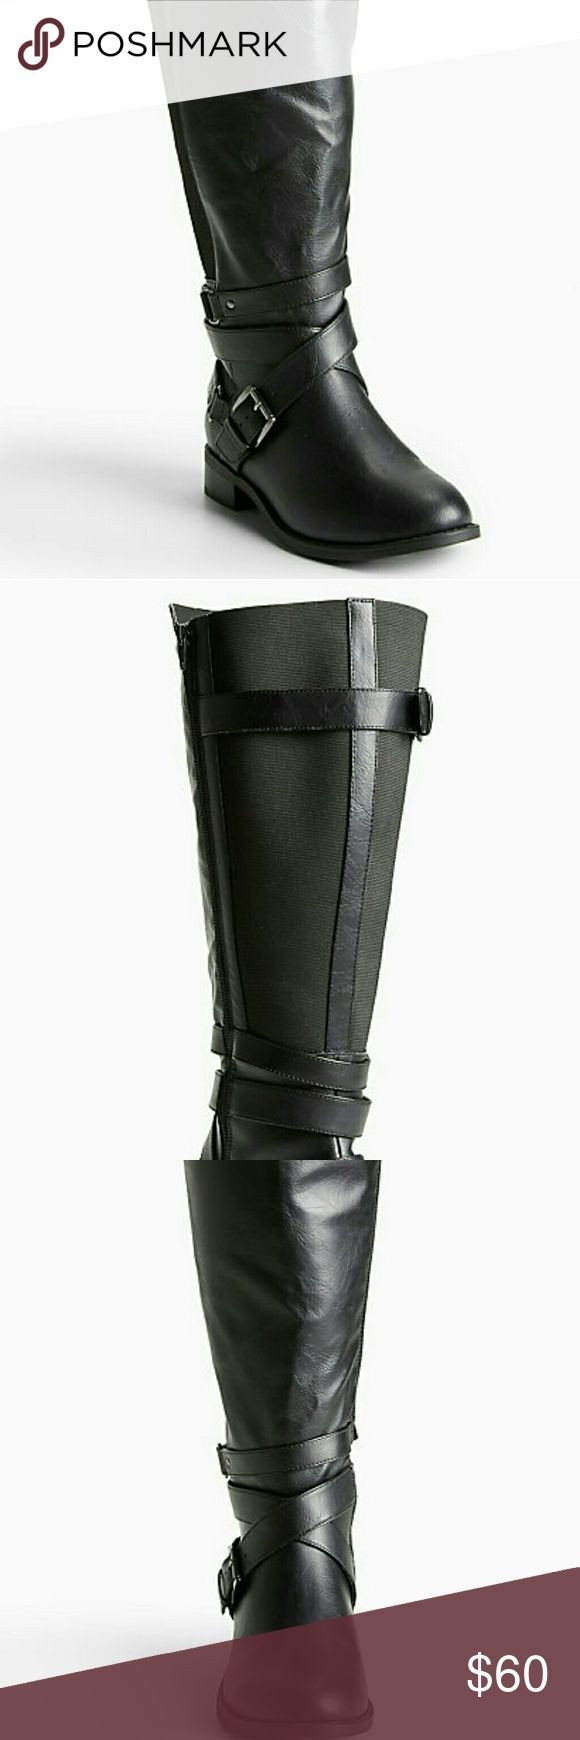 "Torrid Multi Buckle Strap Gore Tall Moto Boots New with Box  Torrid Multi Buckle Strap Gore Tall Black Moto Boots  Wide Width and Wide Calf   Size 9.5  Heel Height 1.5""  Boot Shaft 16.5""  Calf Fit 19.3""  App Will Not Allow Full Size of Pics. Please Refer to Measurements for More of an Accurate Size of these Tall Boots Torrid Shoes Combat & Moto Boots"